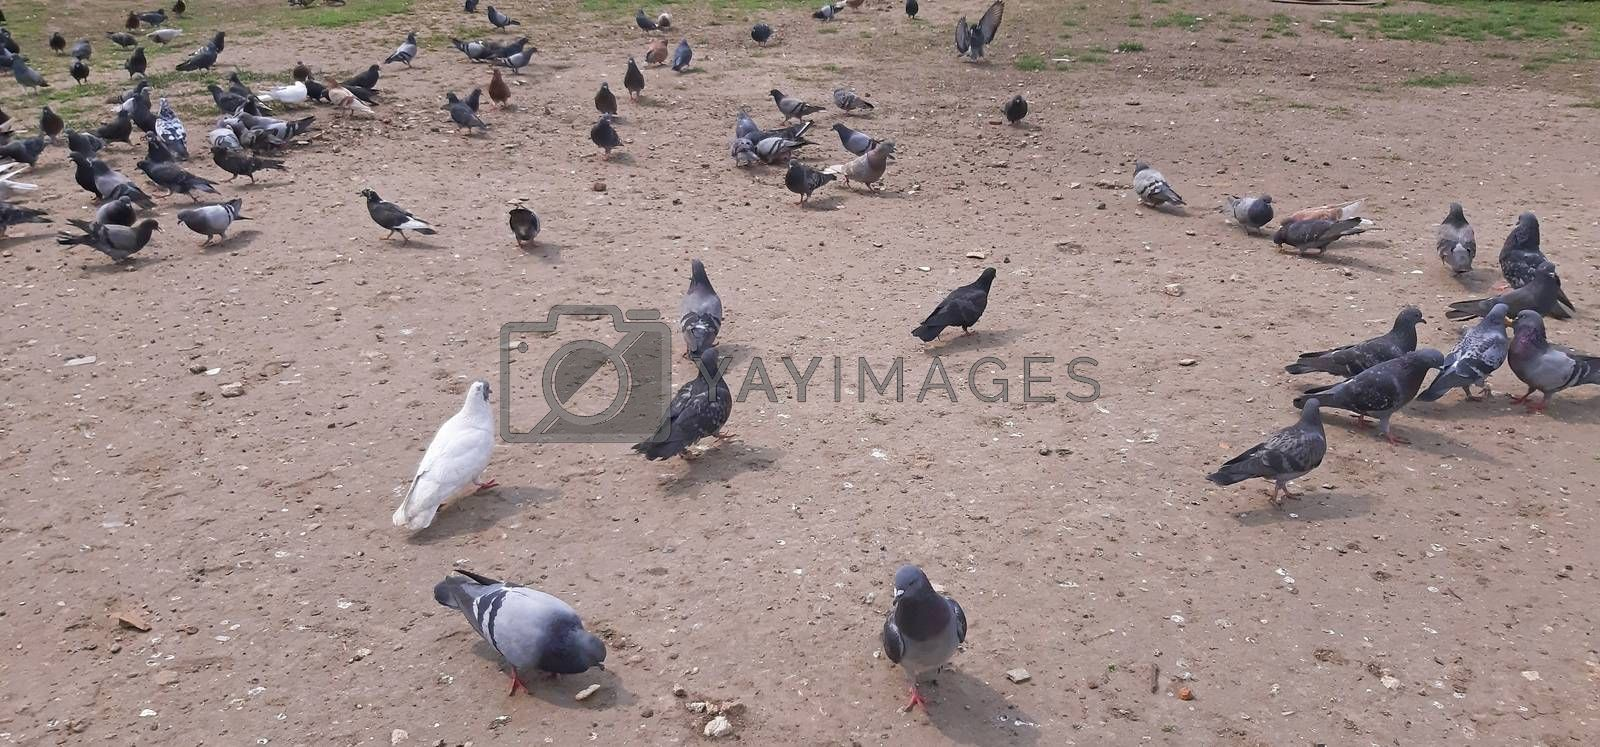 A lot of pigeons in the city.